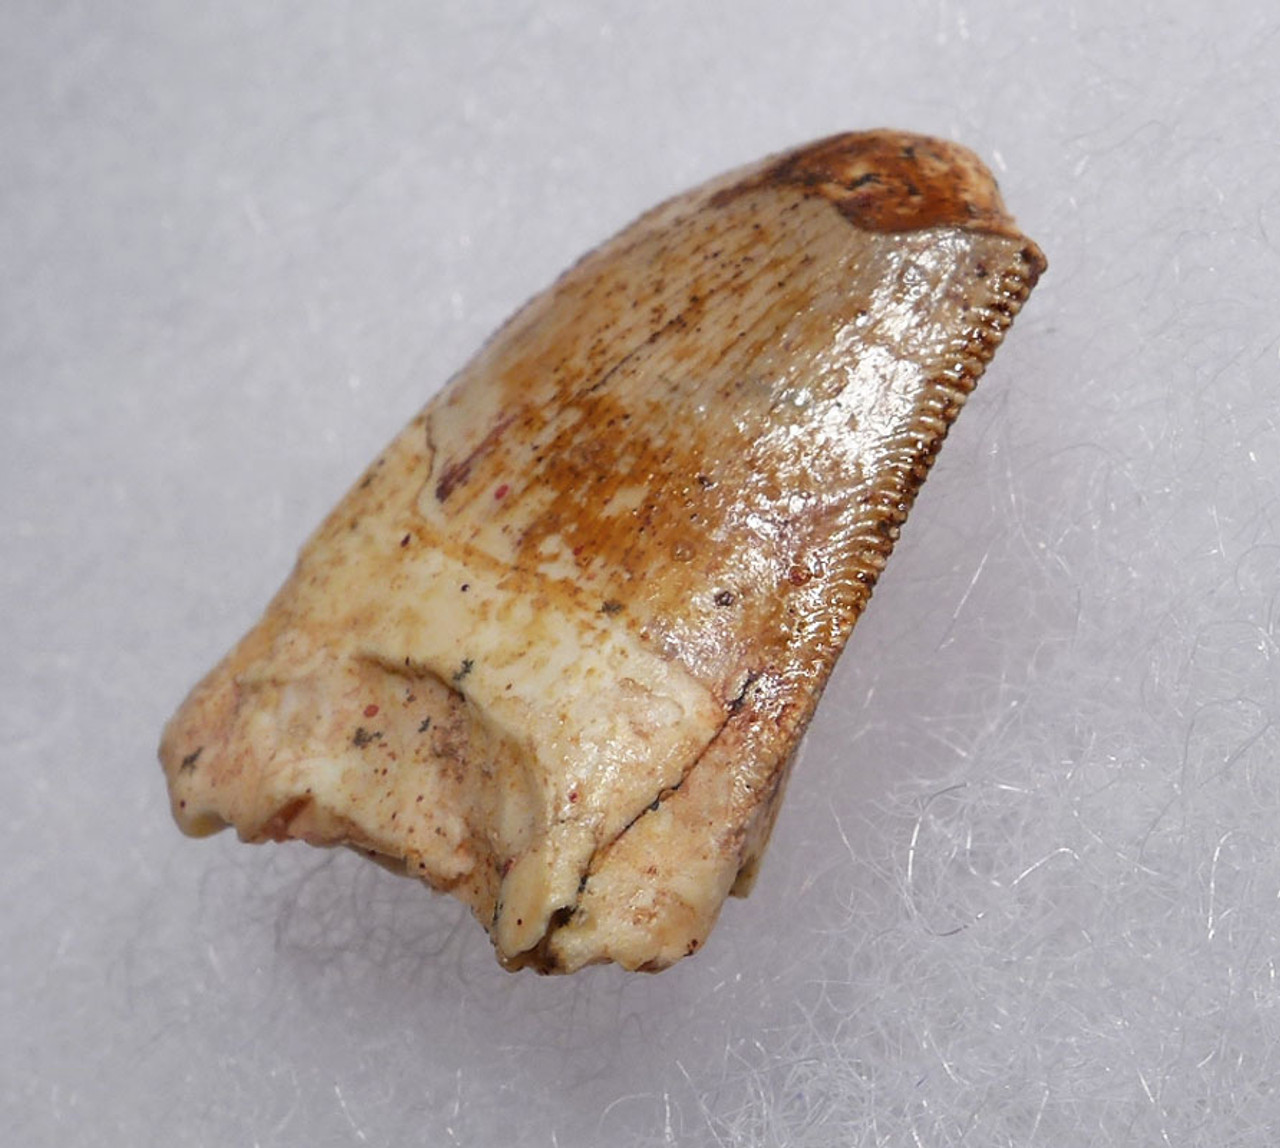 POSTERIOR CARCHARODONTOSAURUS FOSSIL DINOSAUR TOOTH FROM THE BACK OF THE JAW  *DT11-043